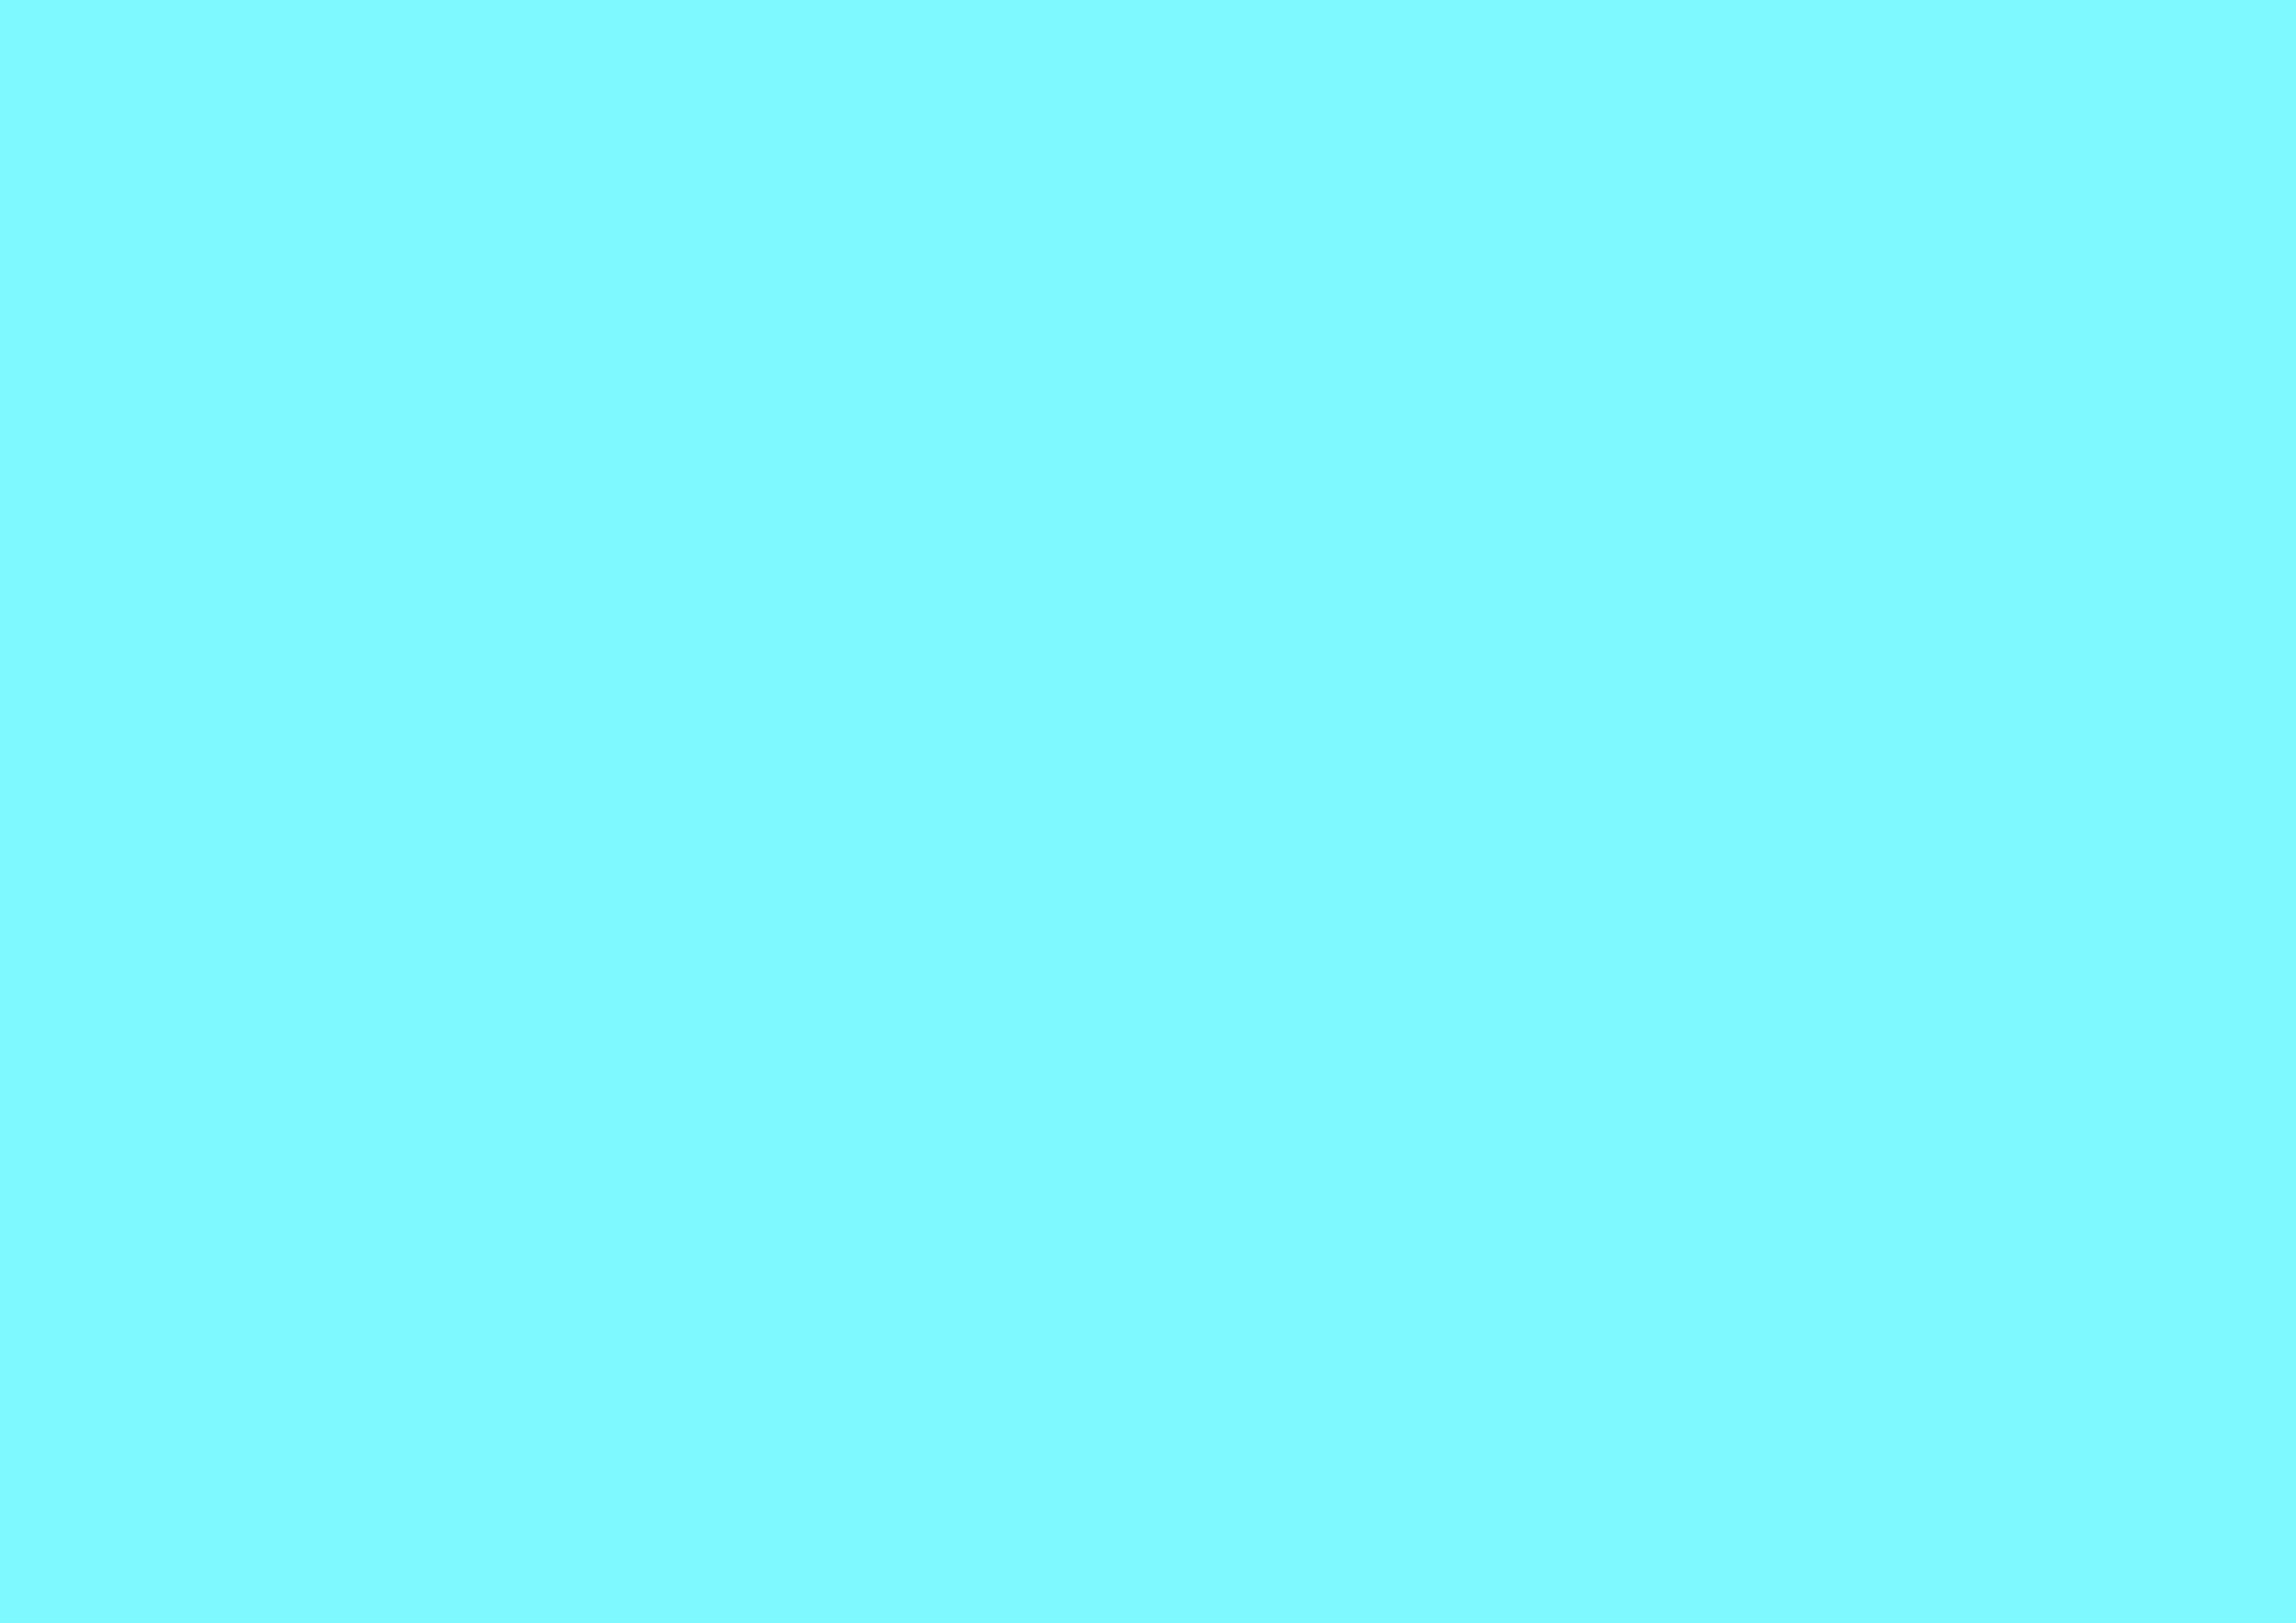 3508x2480 Electric Blue Solid Color Background